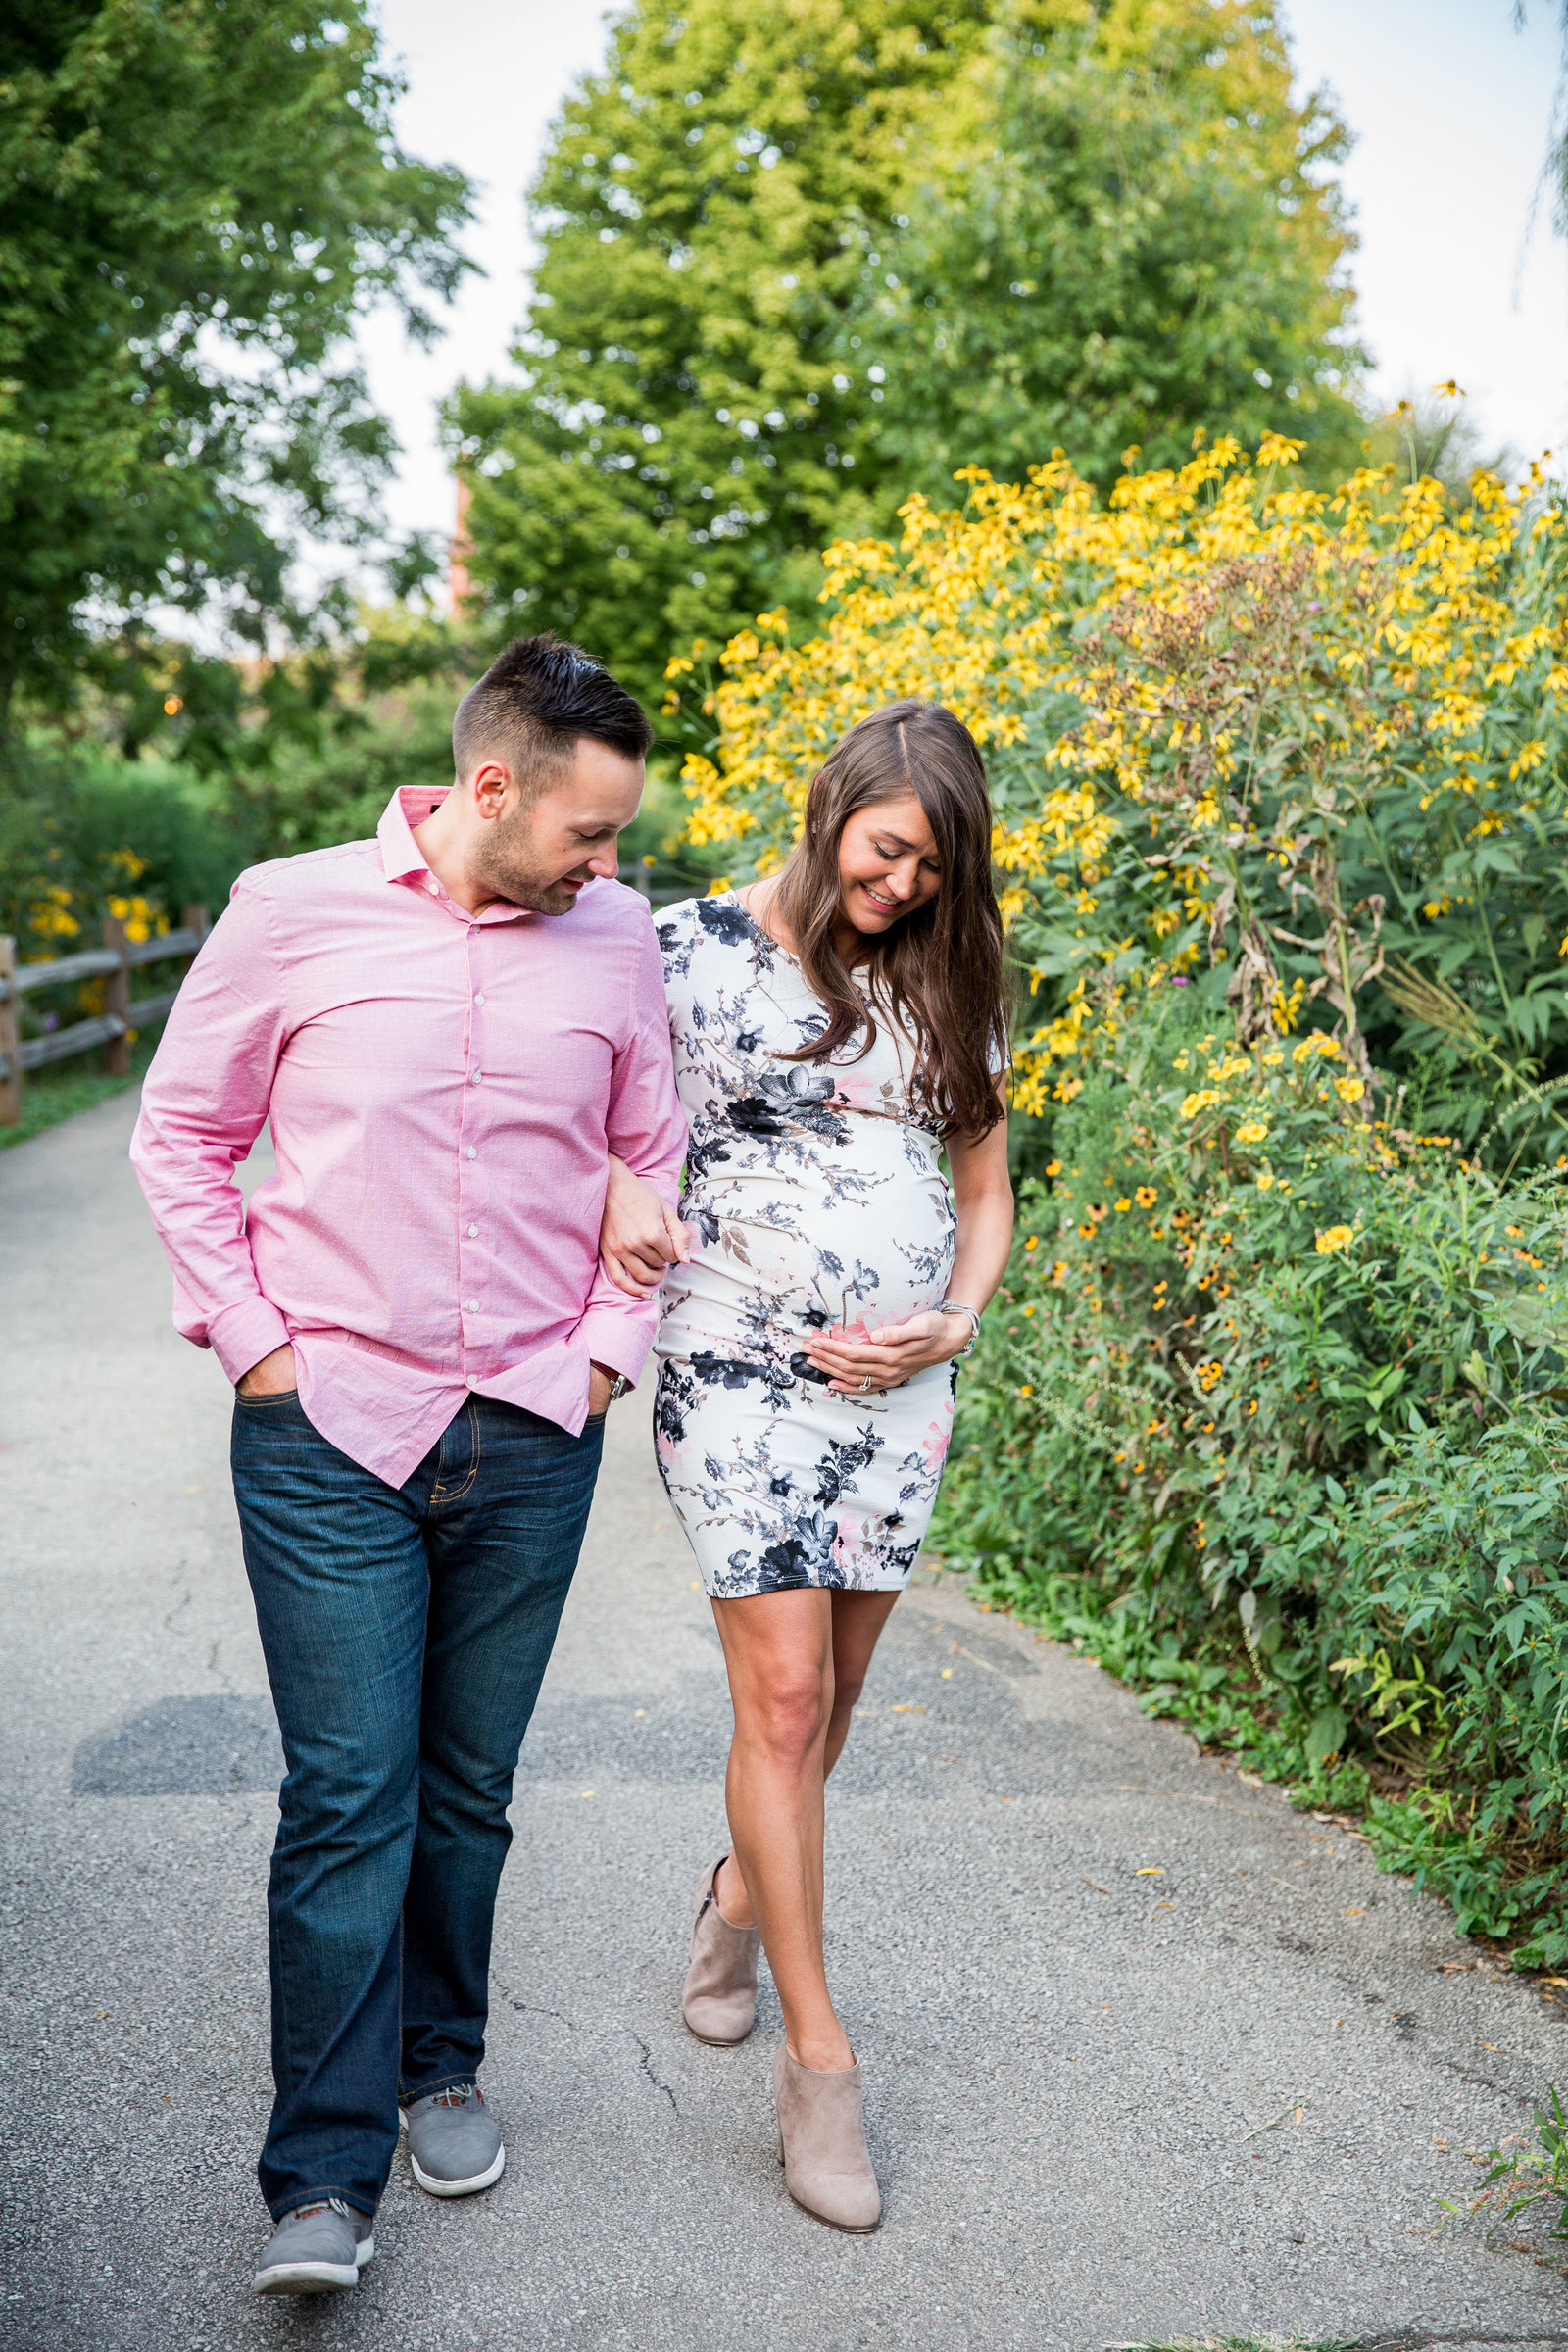 Chicago Maternity & Pregnancy Organic Natural Light Photographer